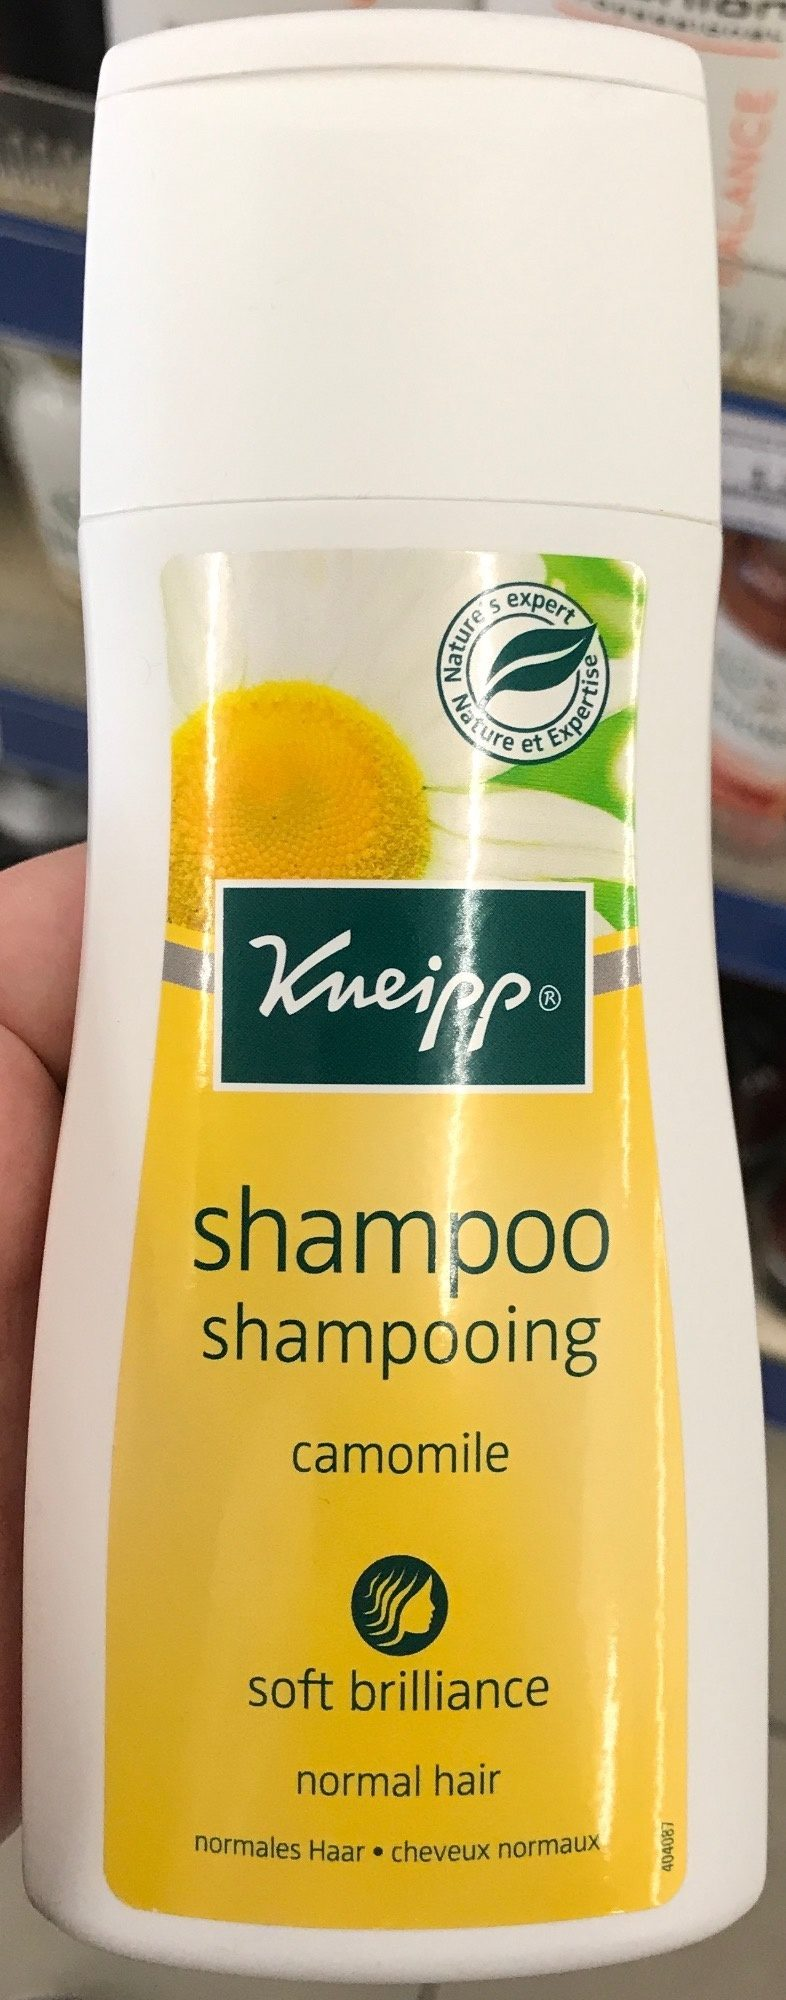 Shampooing Camomille - Produit